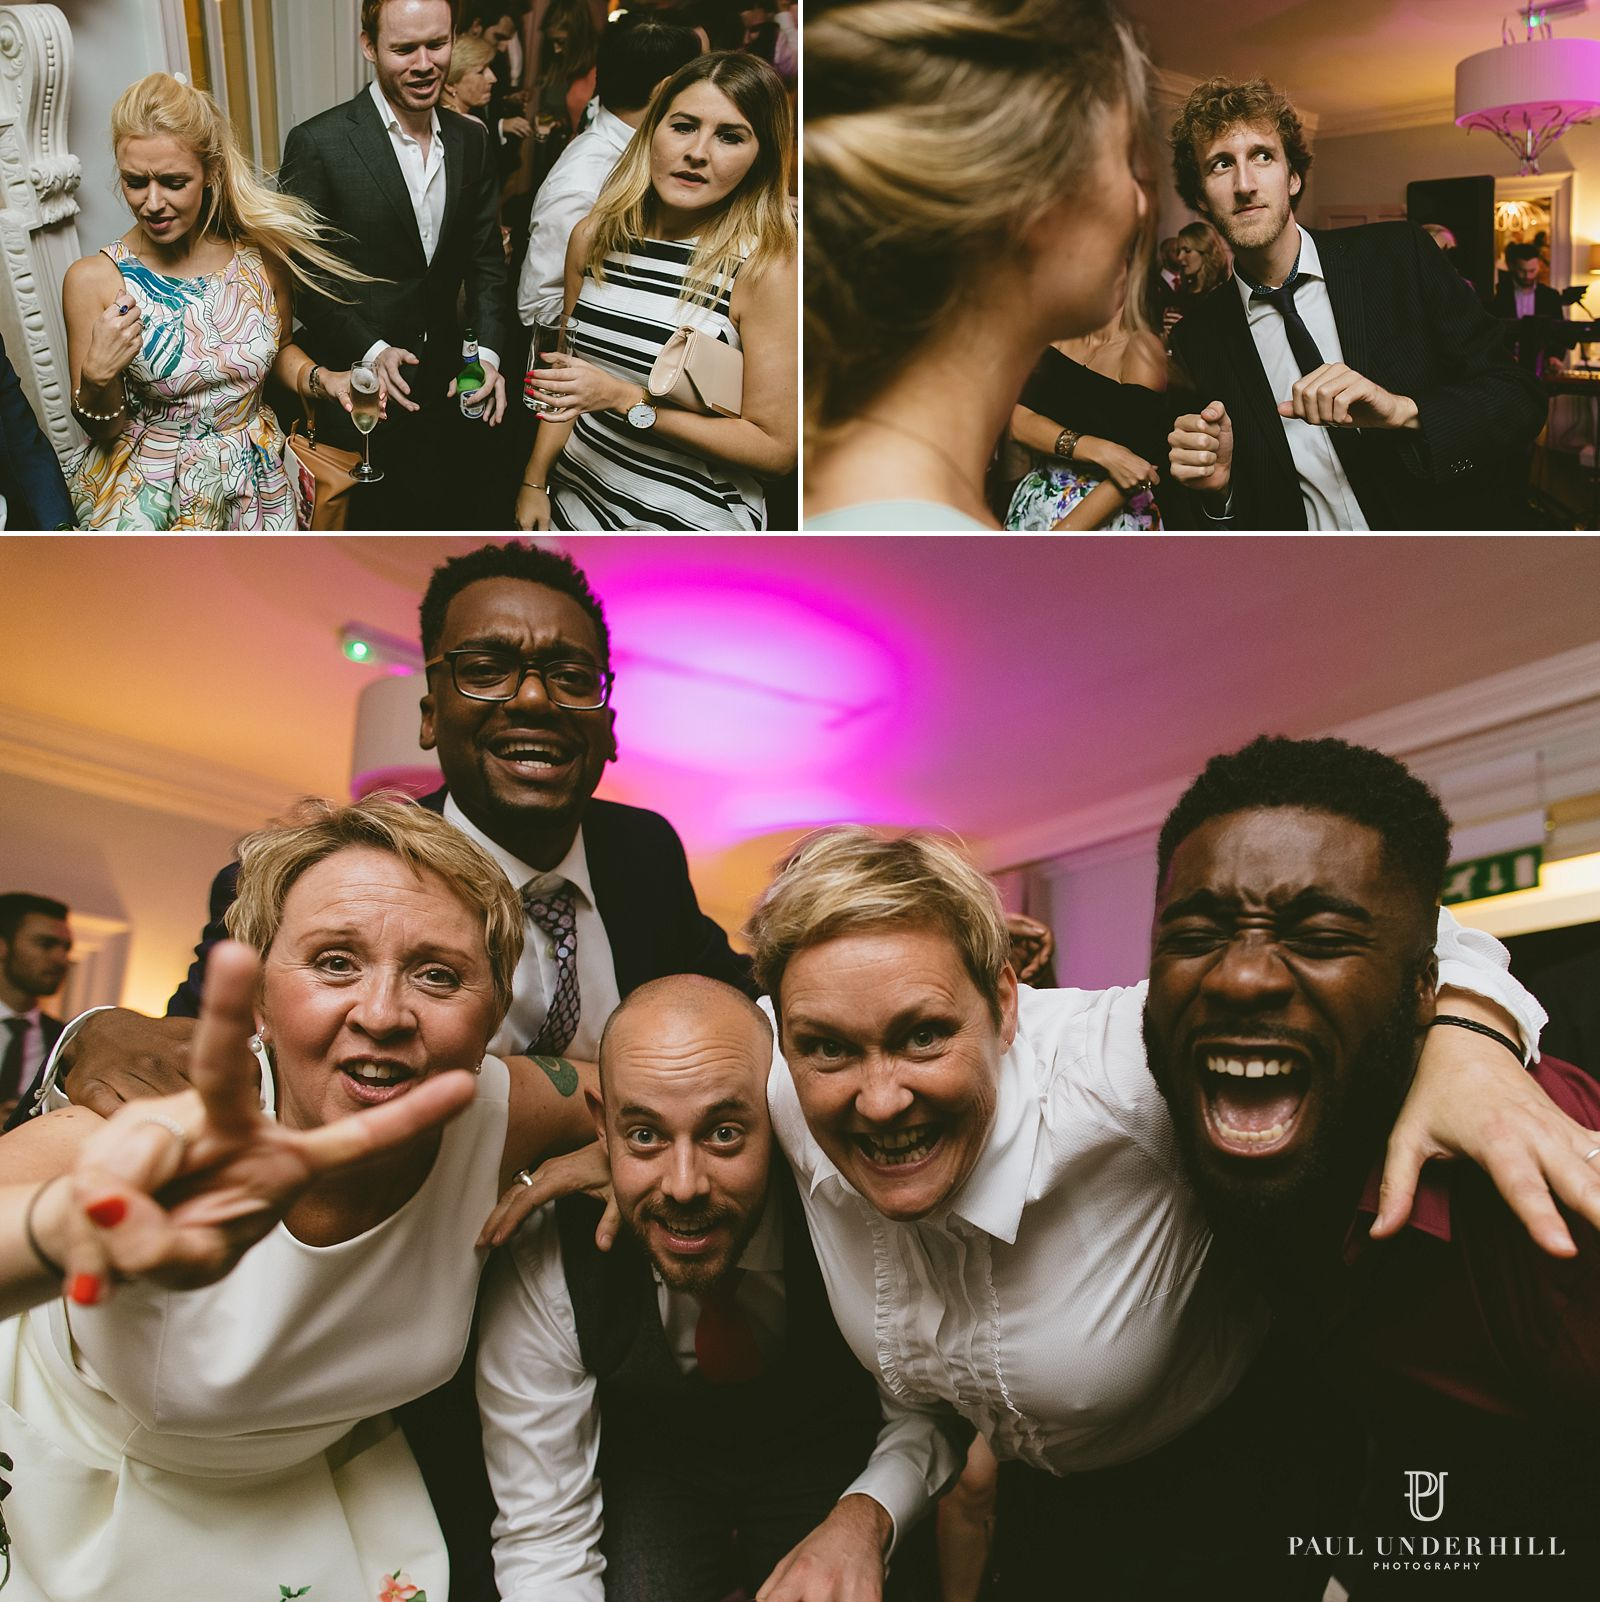 london-wedding-guests-celebrating